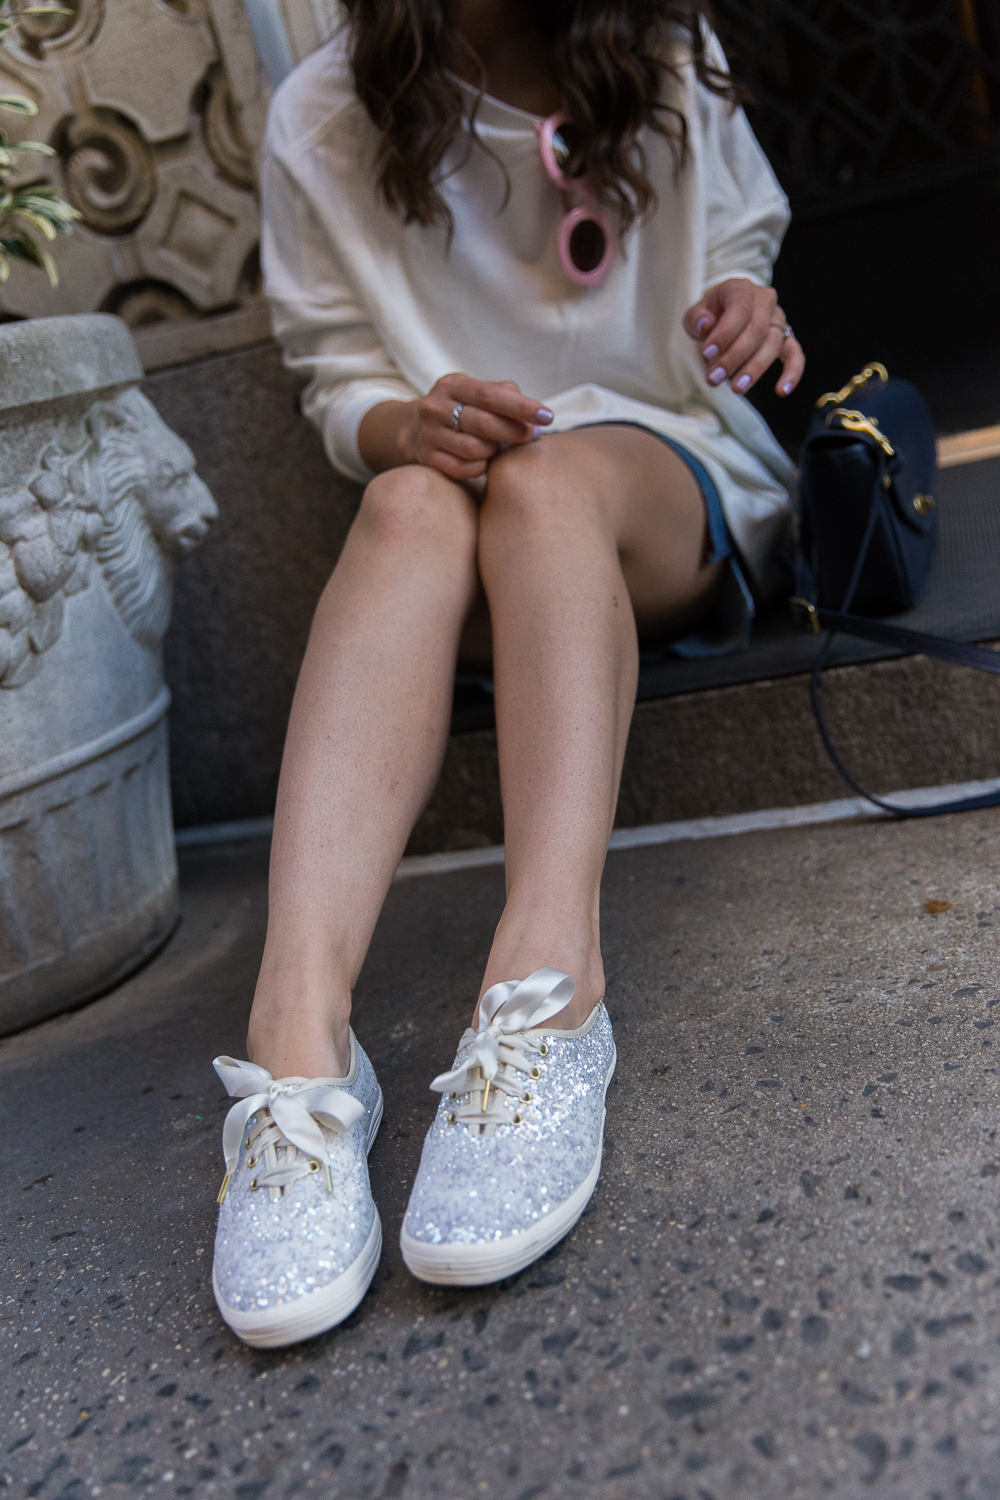 Glitter Sneakers Keds Esther Santer Fashion Blog NYC Street Style Blogger Outfit OOTD Trendy Wedding Idea Ribbon Laces Cream Color Dancing Oversized Sweatshirt Navy Blue Purse Pink Sunglasses Girl Women Shoes Wear Shopping Casual Activewear Feminine.jpg